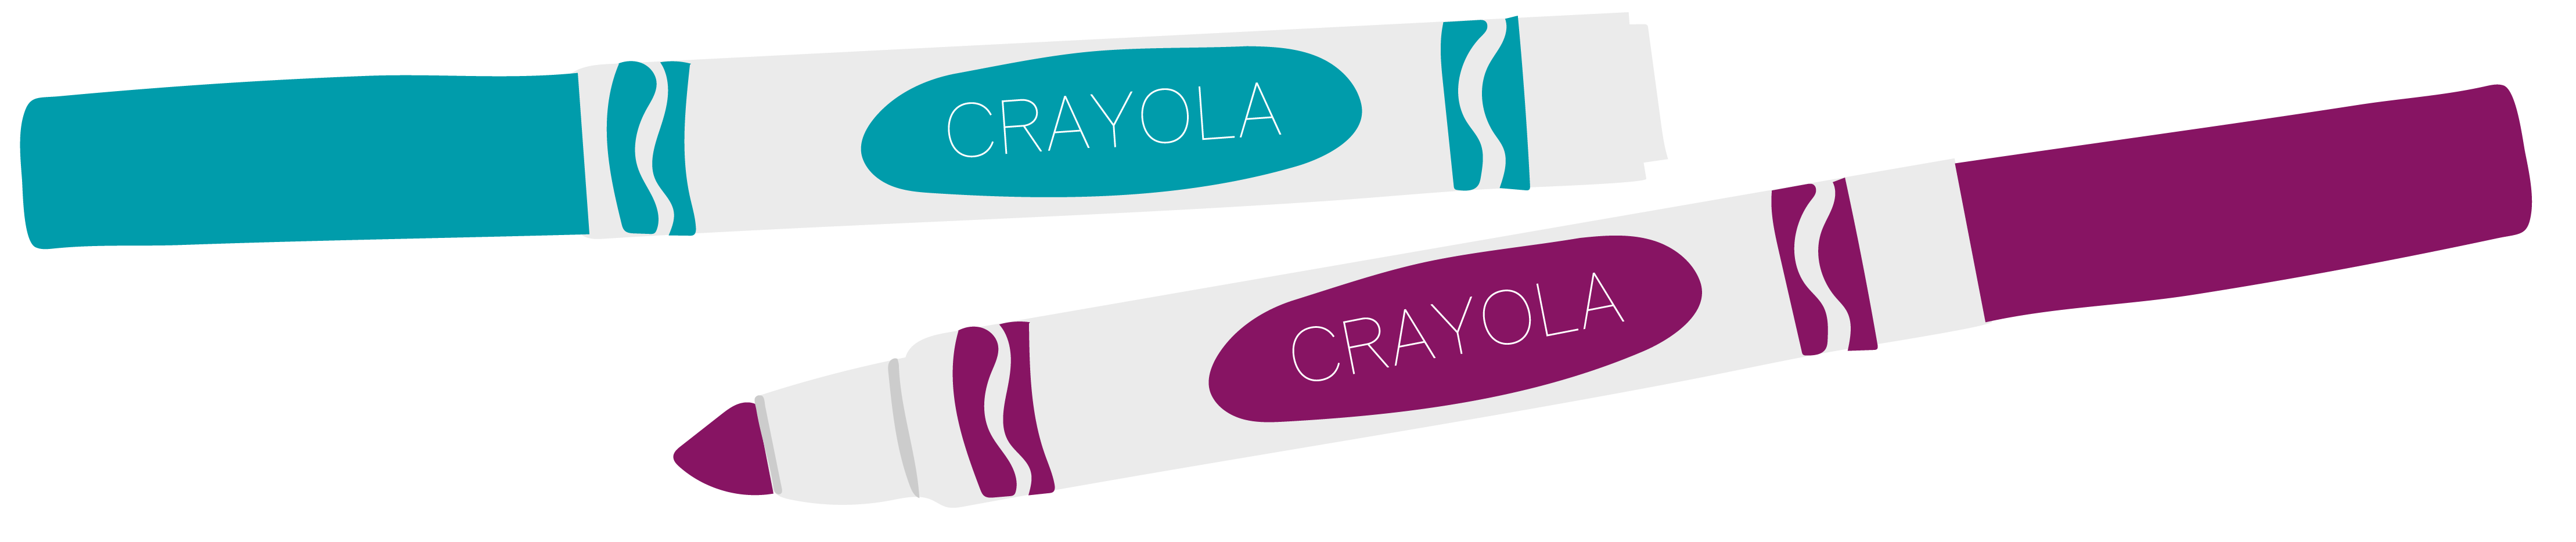 Markers clipart hand holding. Crayola colors list affordable